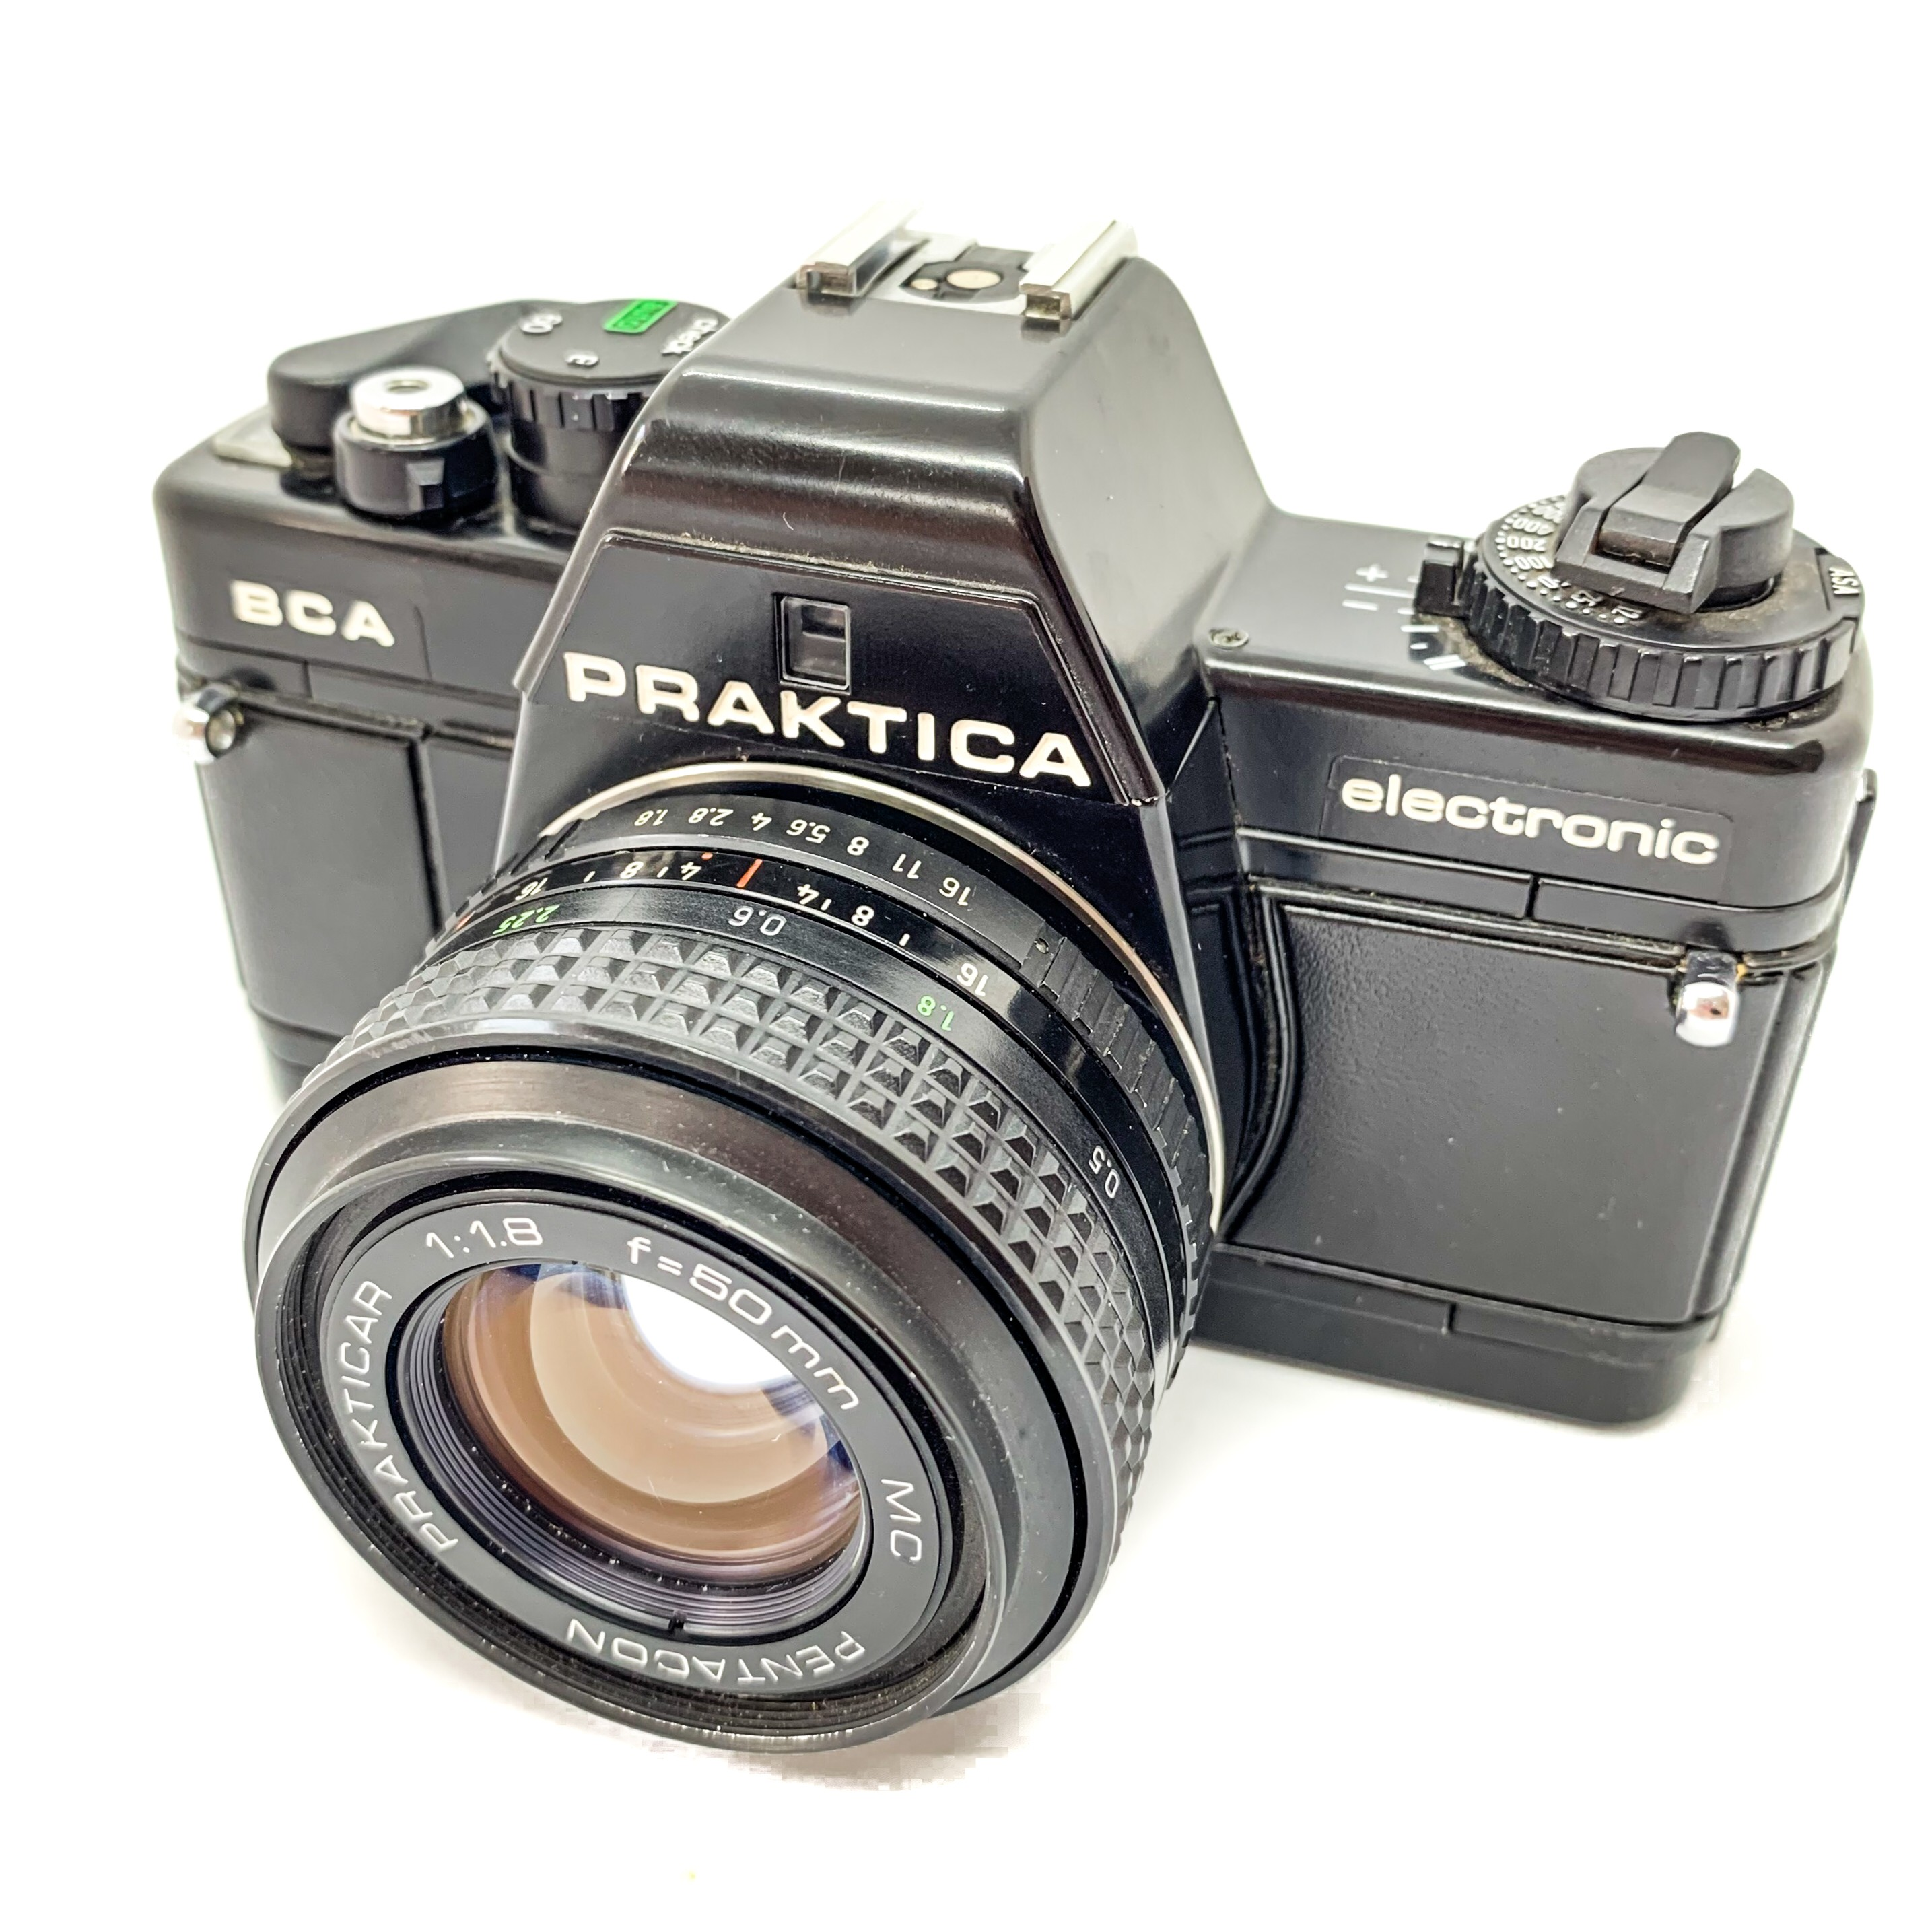 Praktica bca 35mm film camera